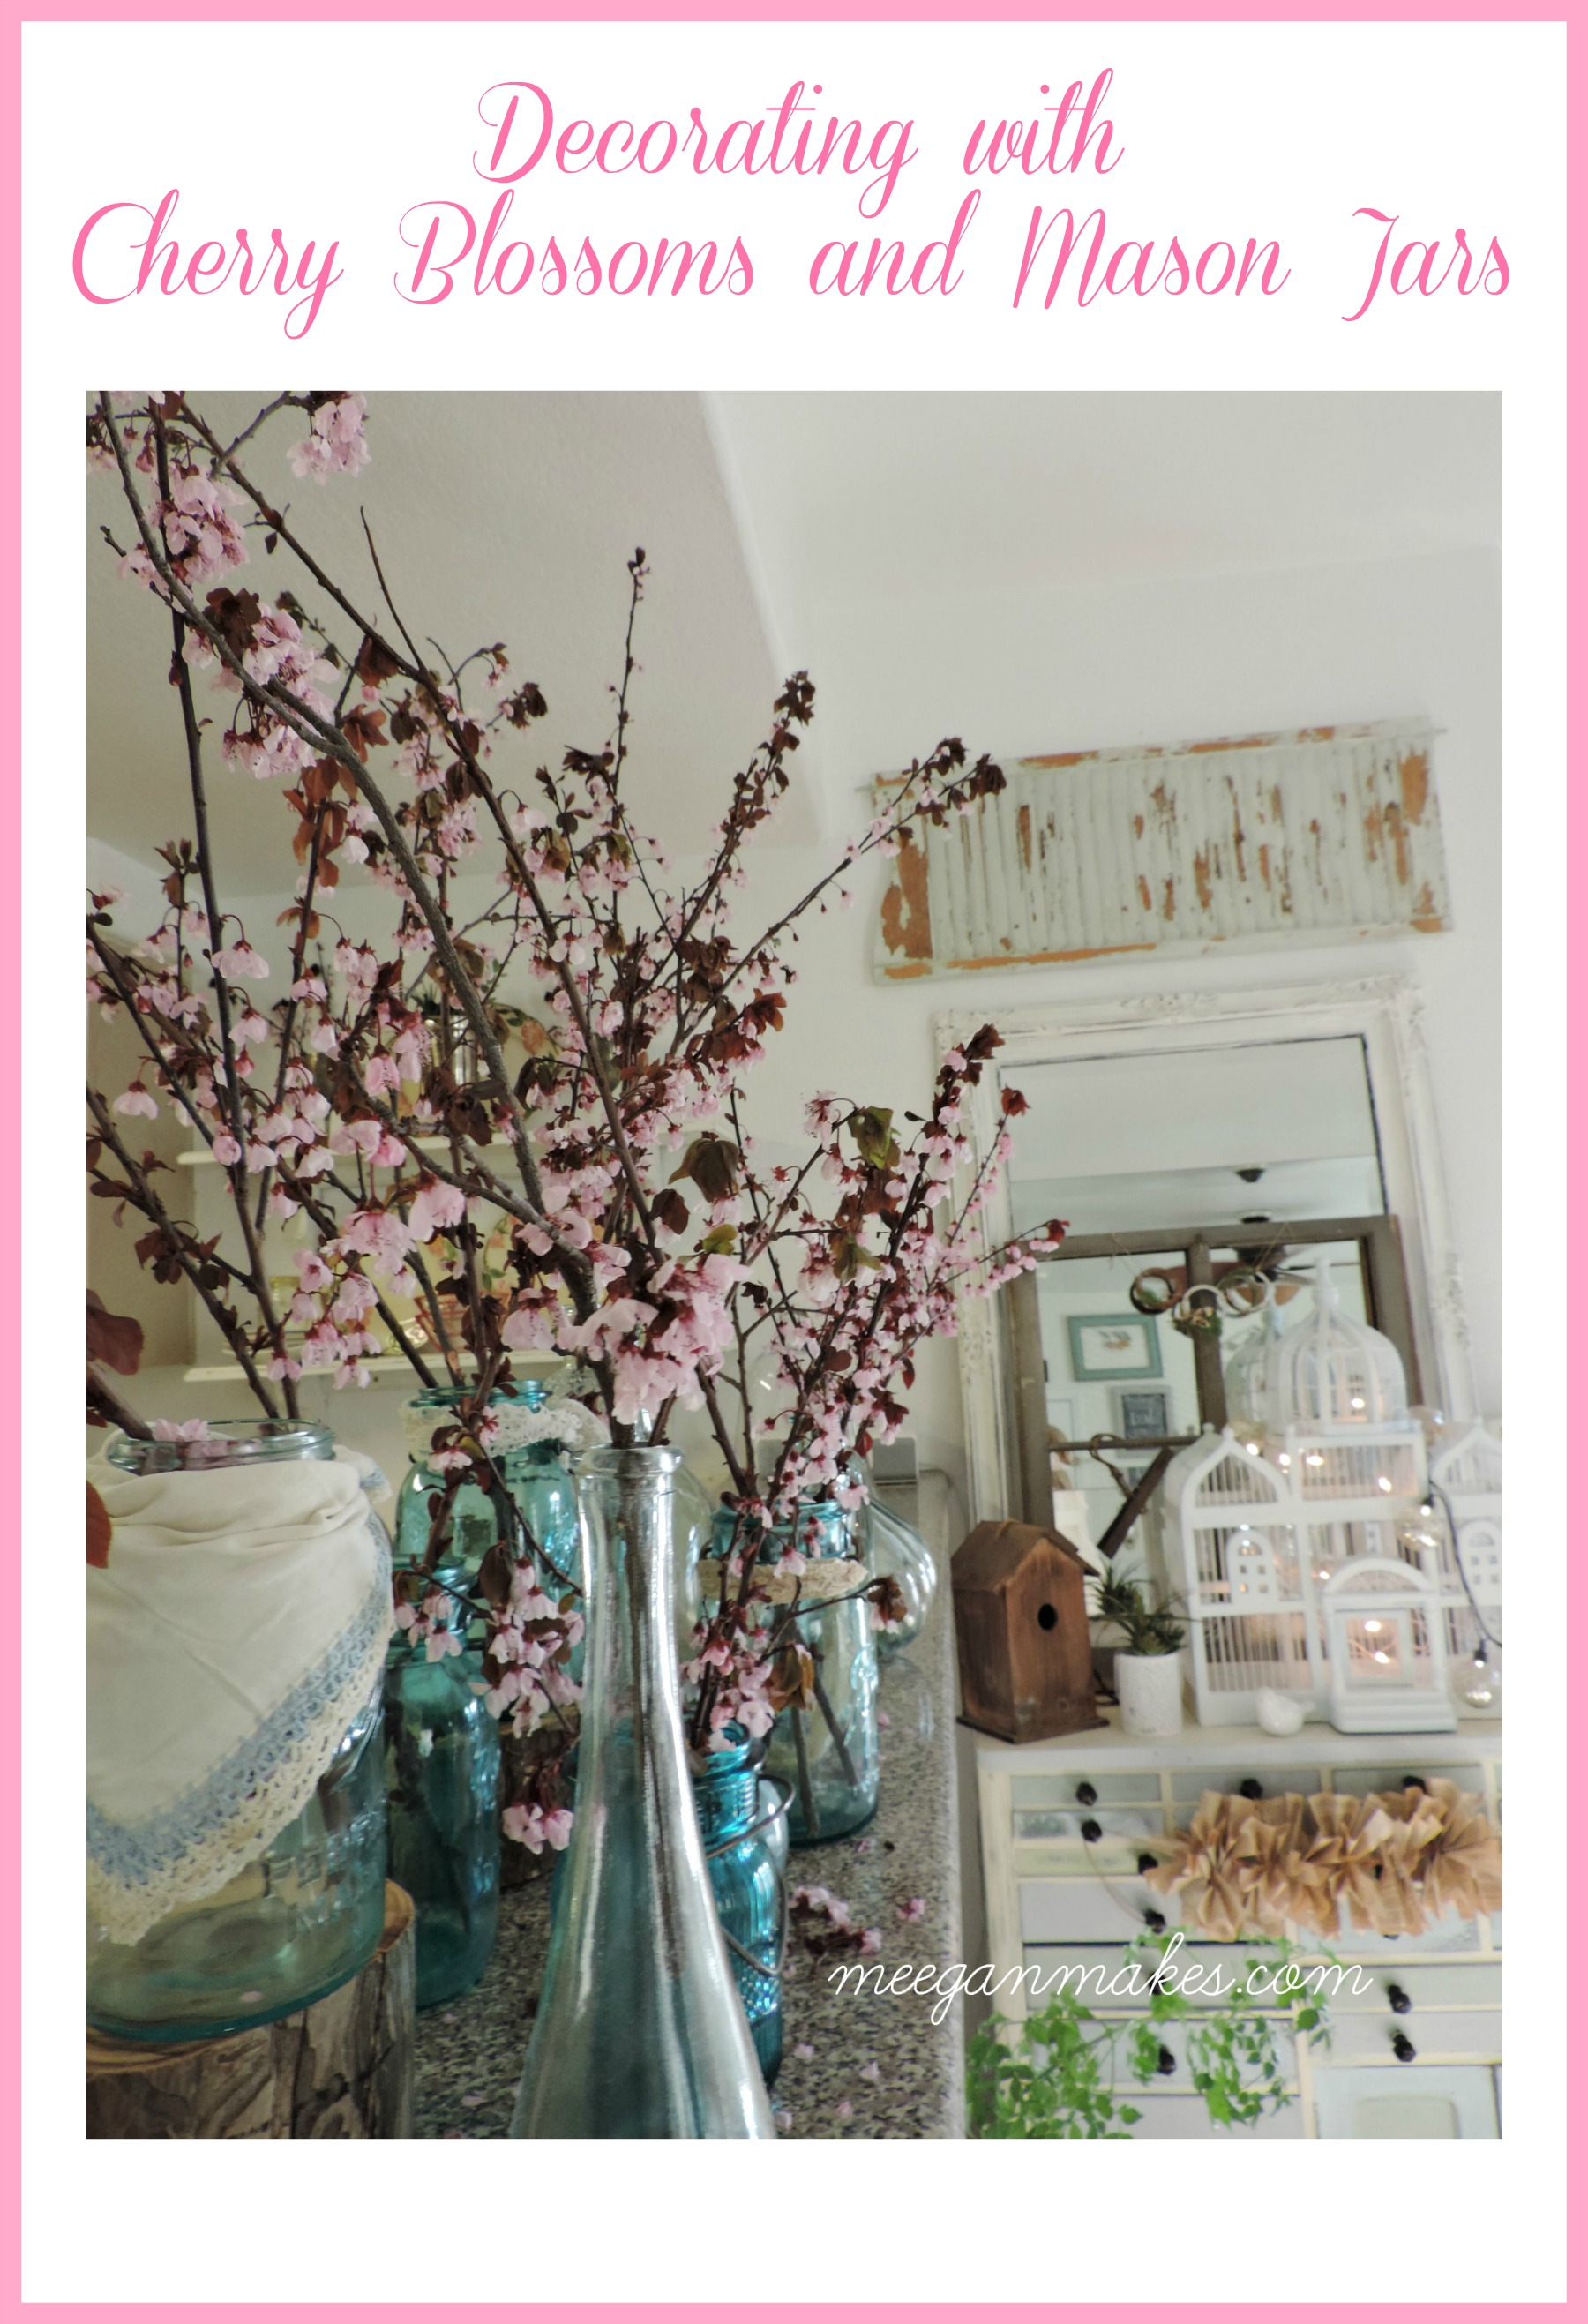 Decorating with Cherry Blossoms and Mason jars